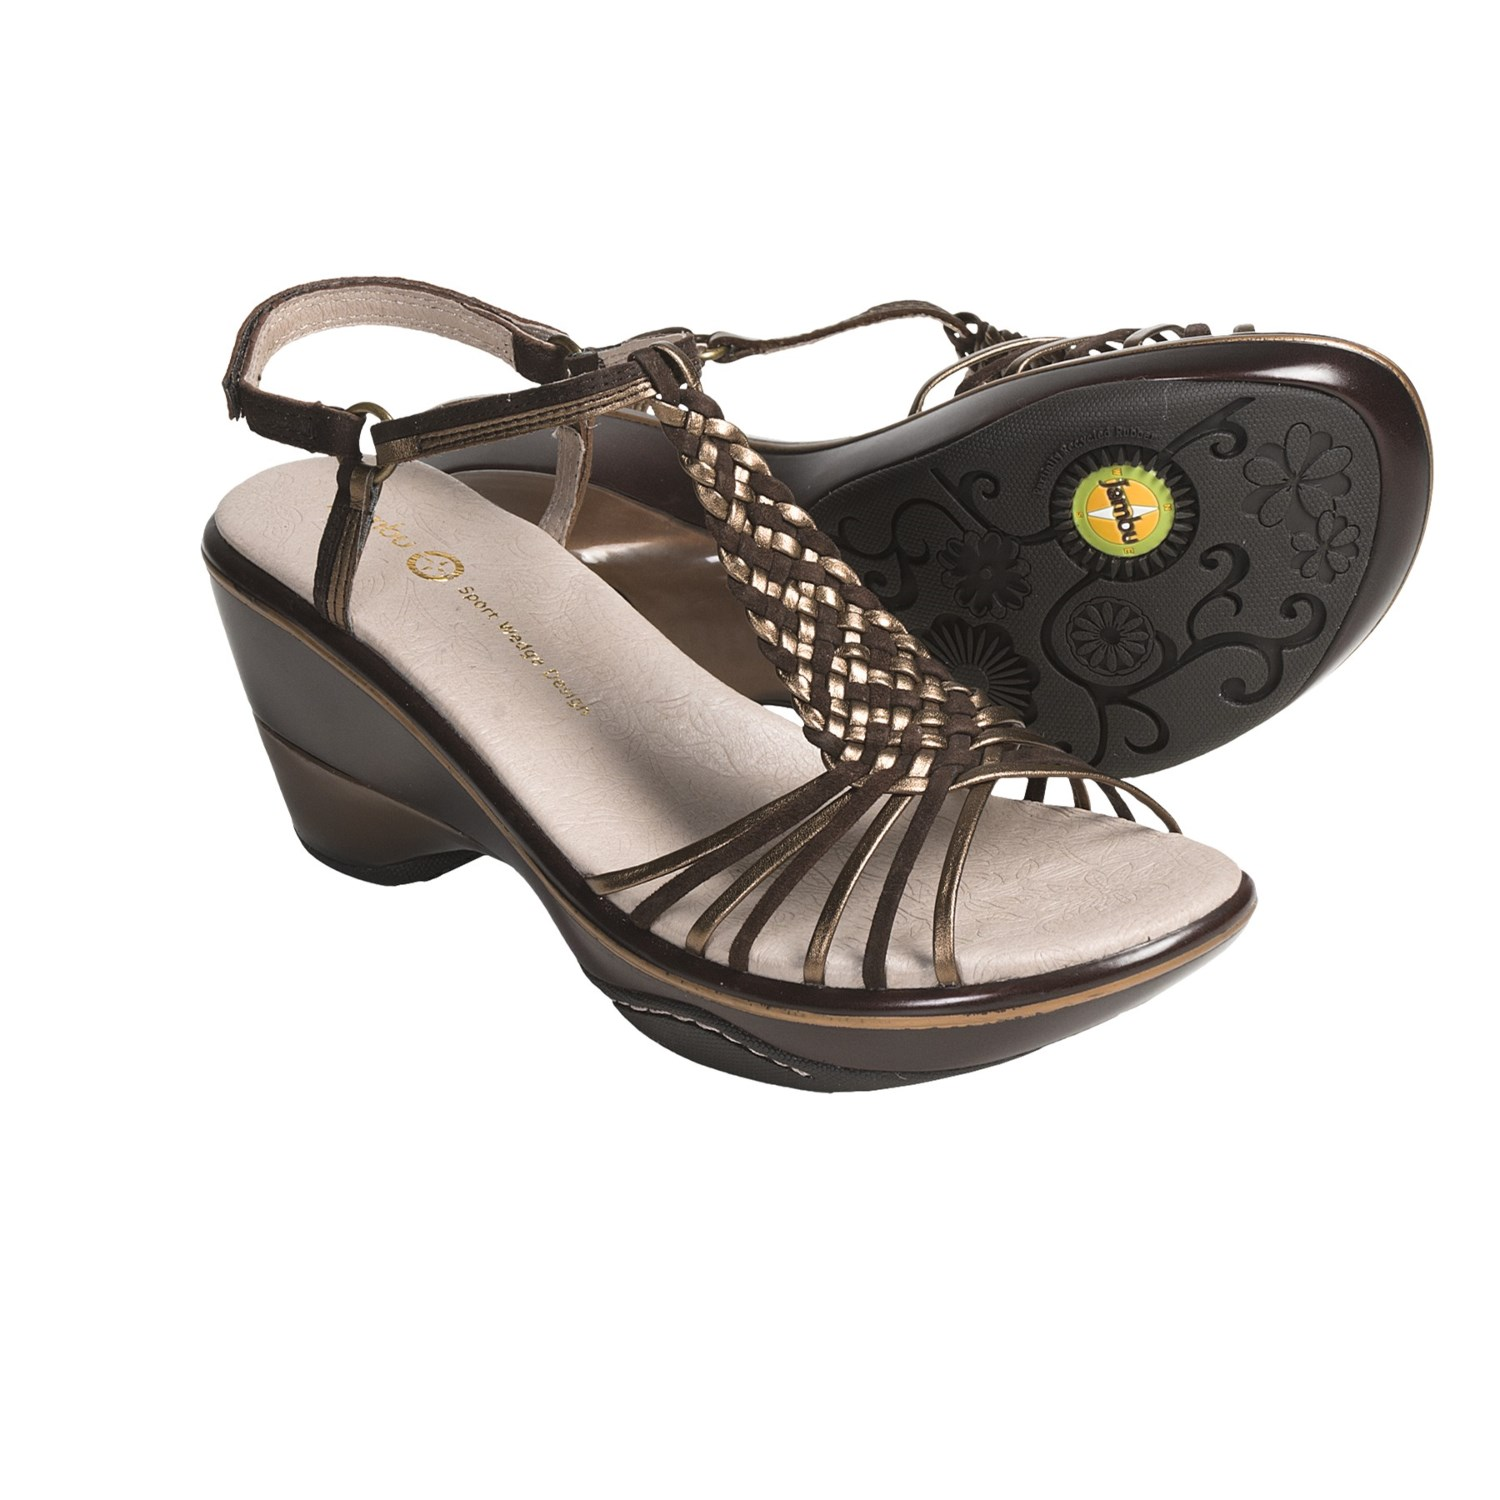 Strap Leather Sandals for Women